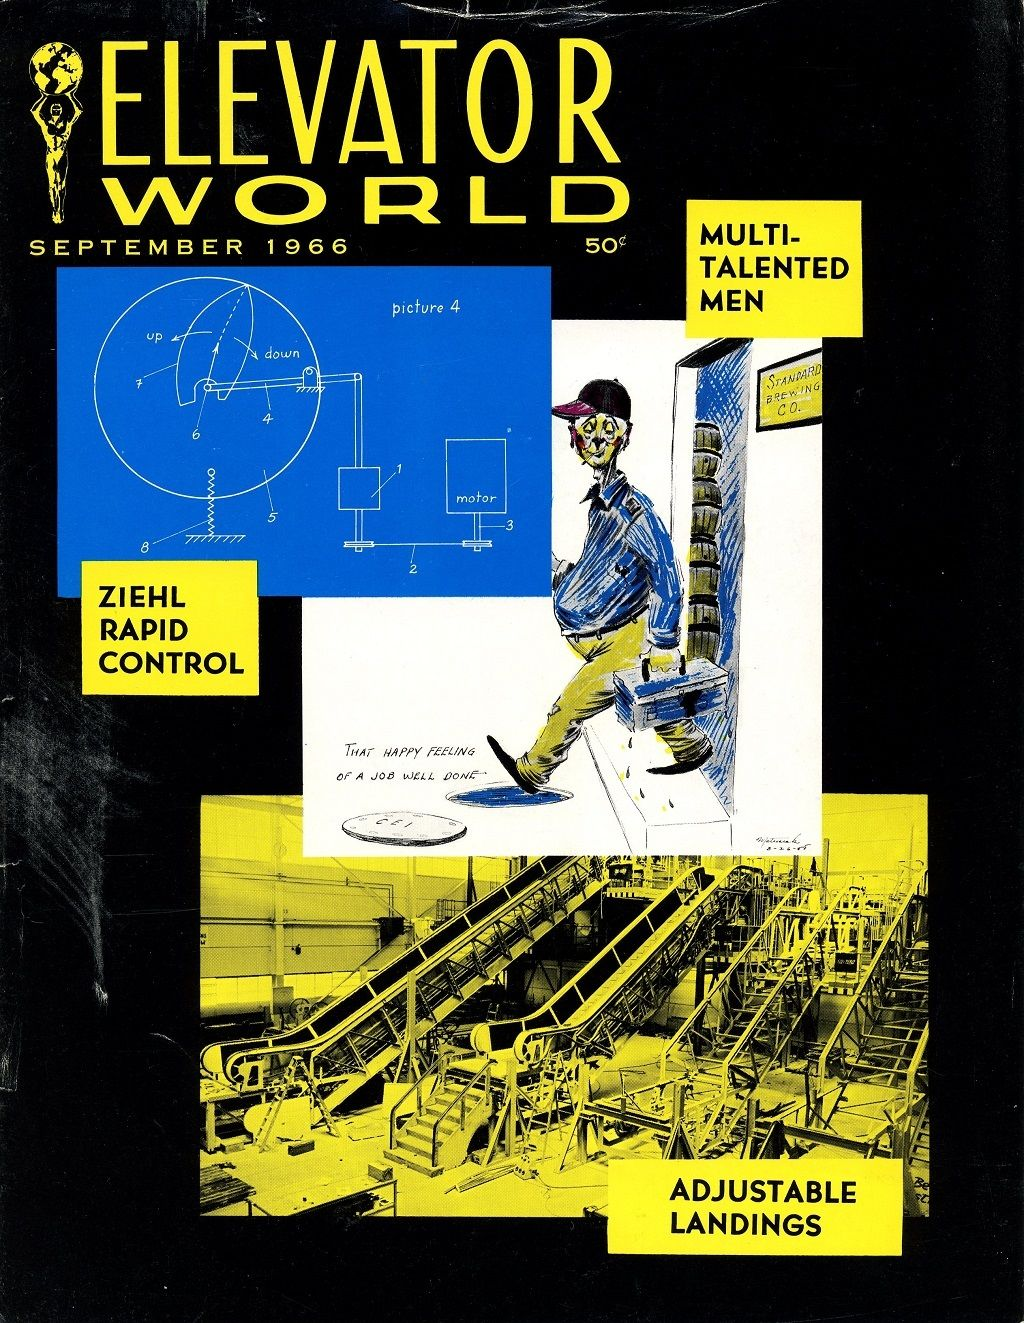 #TBT to this September 1966 cover of ELEVATOR WORLD! http://buff.ly/2cFCunR